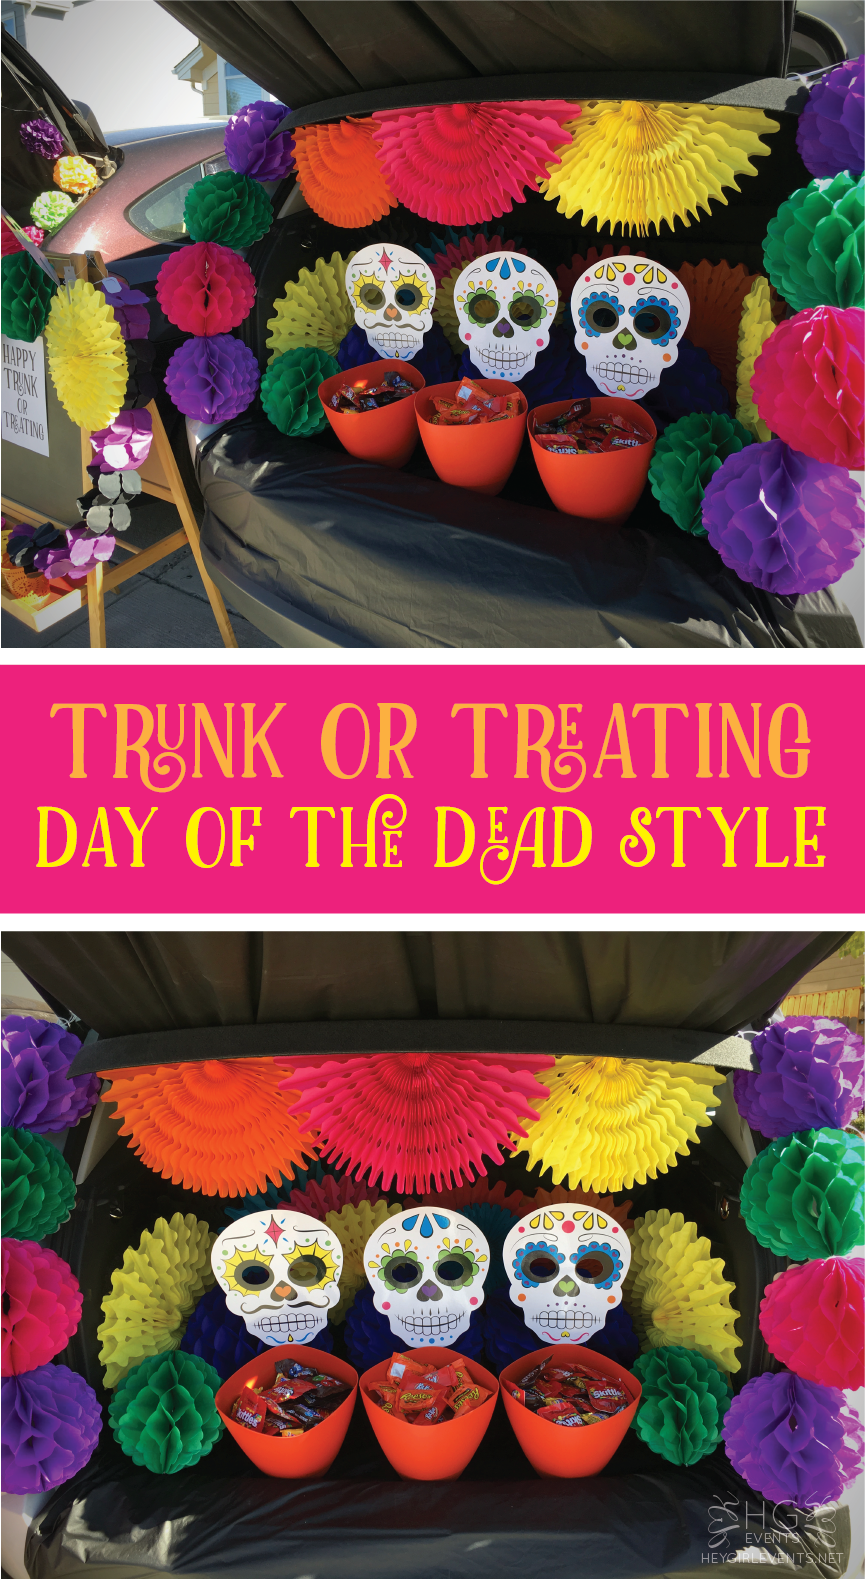 Trunk or Treating 2016 Blog Hop. Day of the Dead theme by